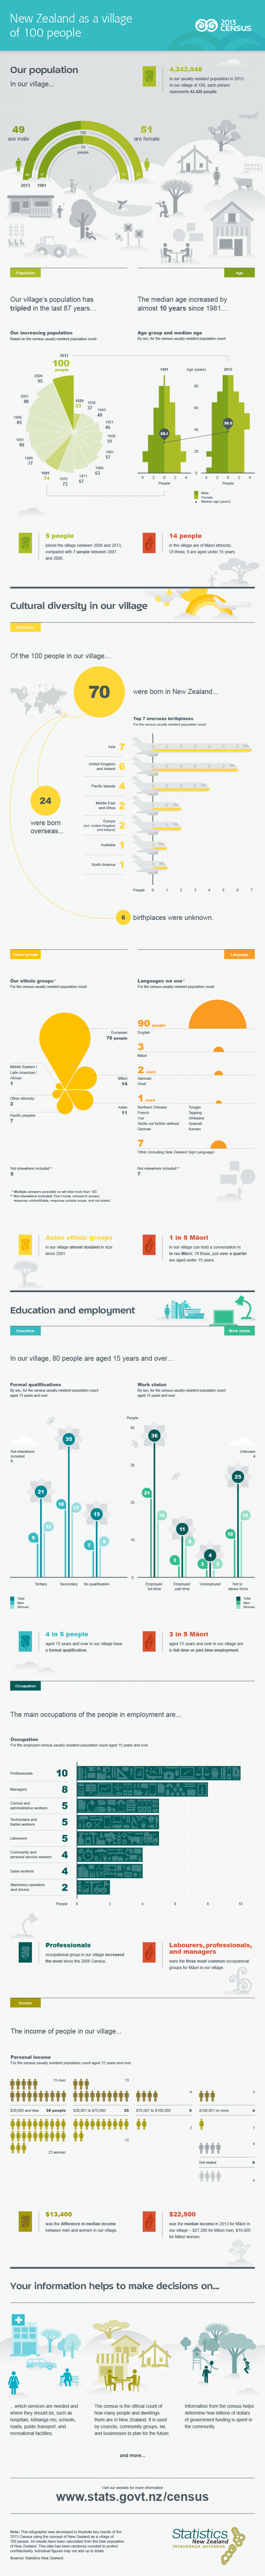 """2013 Census """"New Zealand As A Village Of 100 People"""" Infographic"""